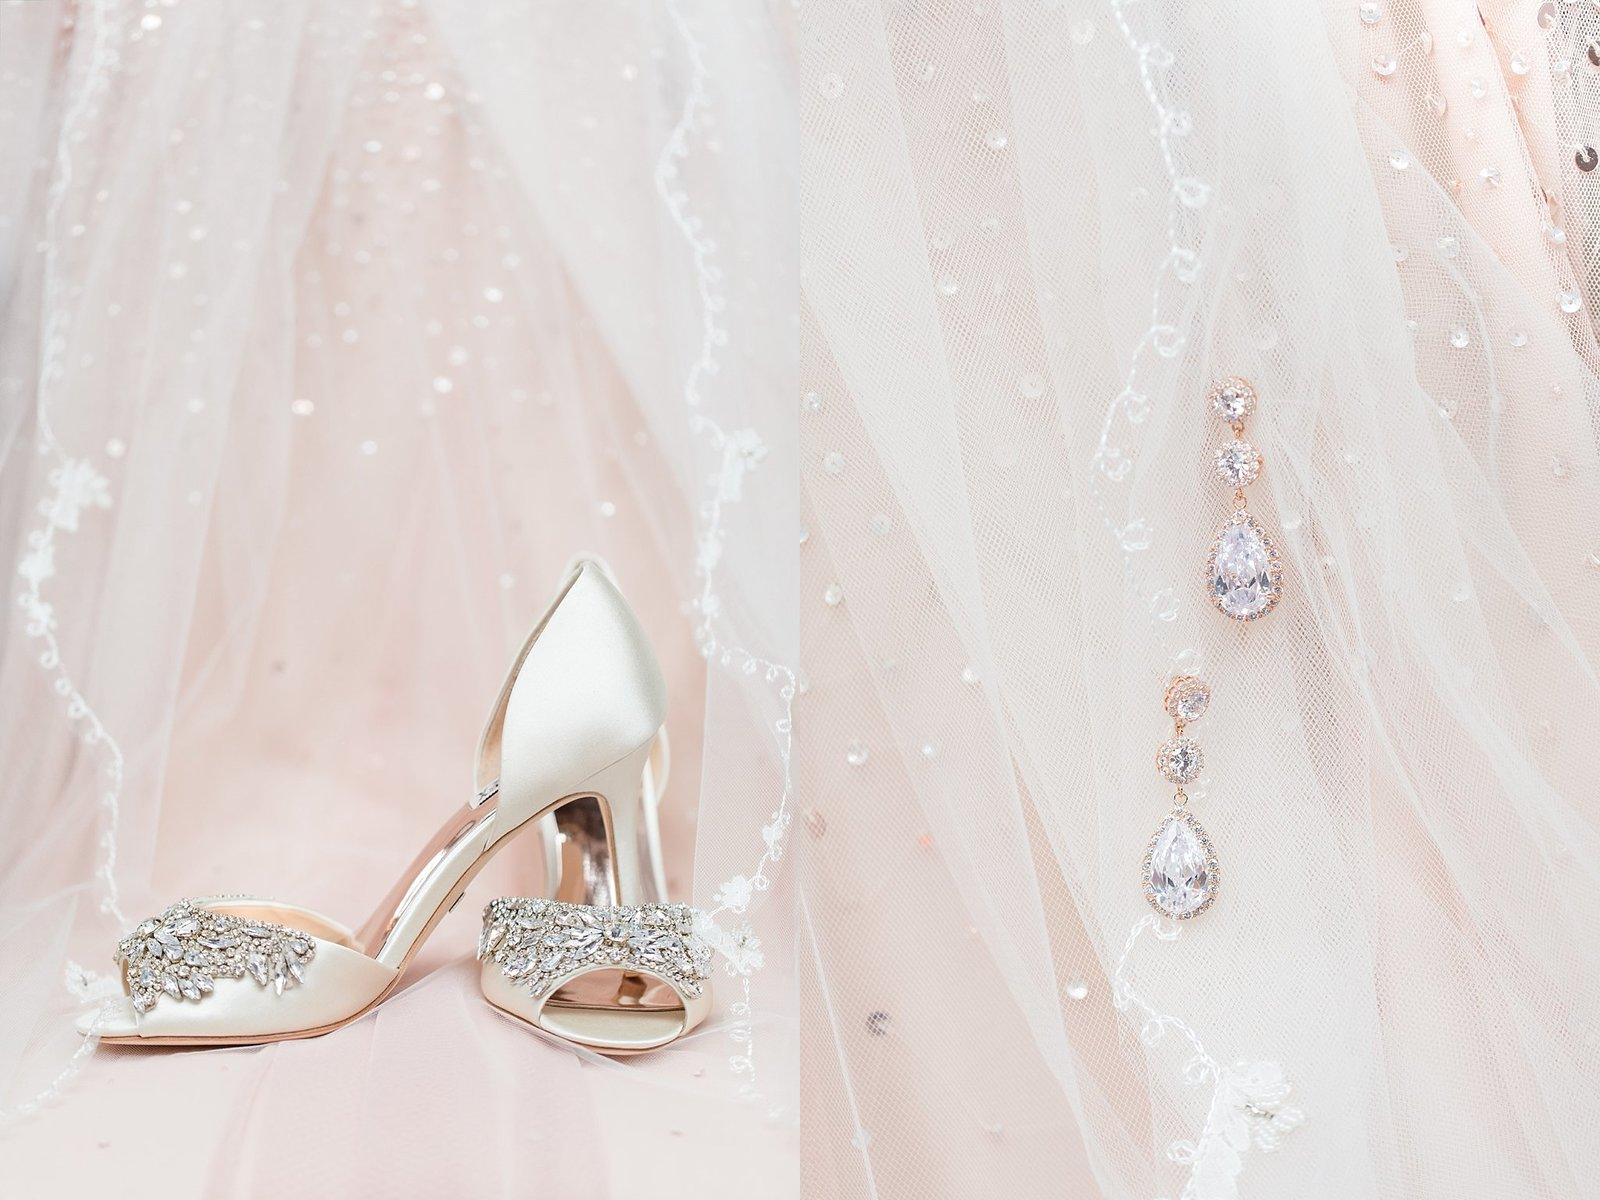 Fair Barn Wedding-Badgely Mischka Wedding Shoes